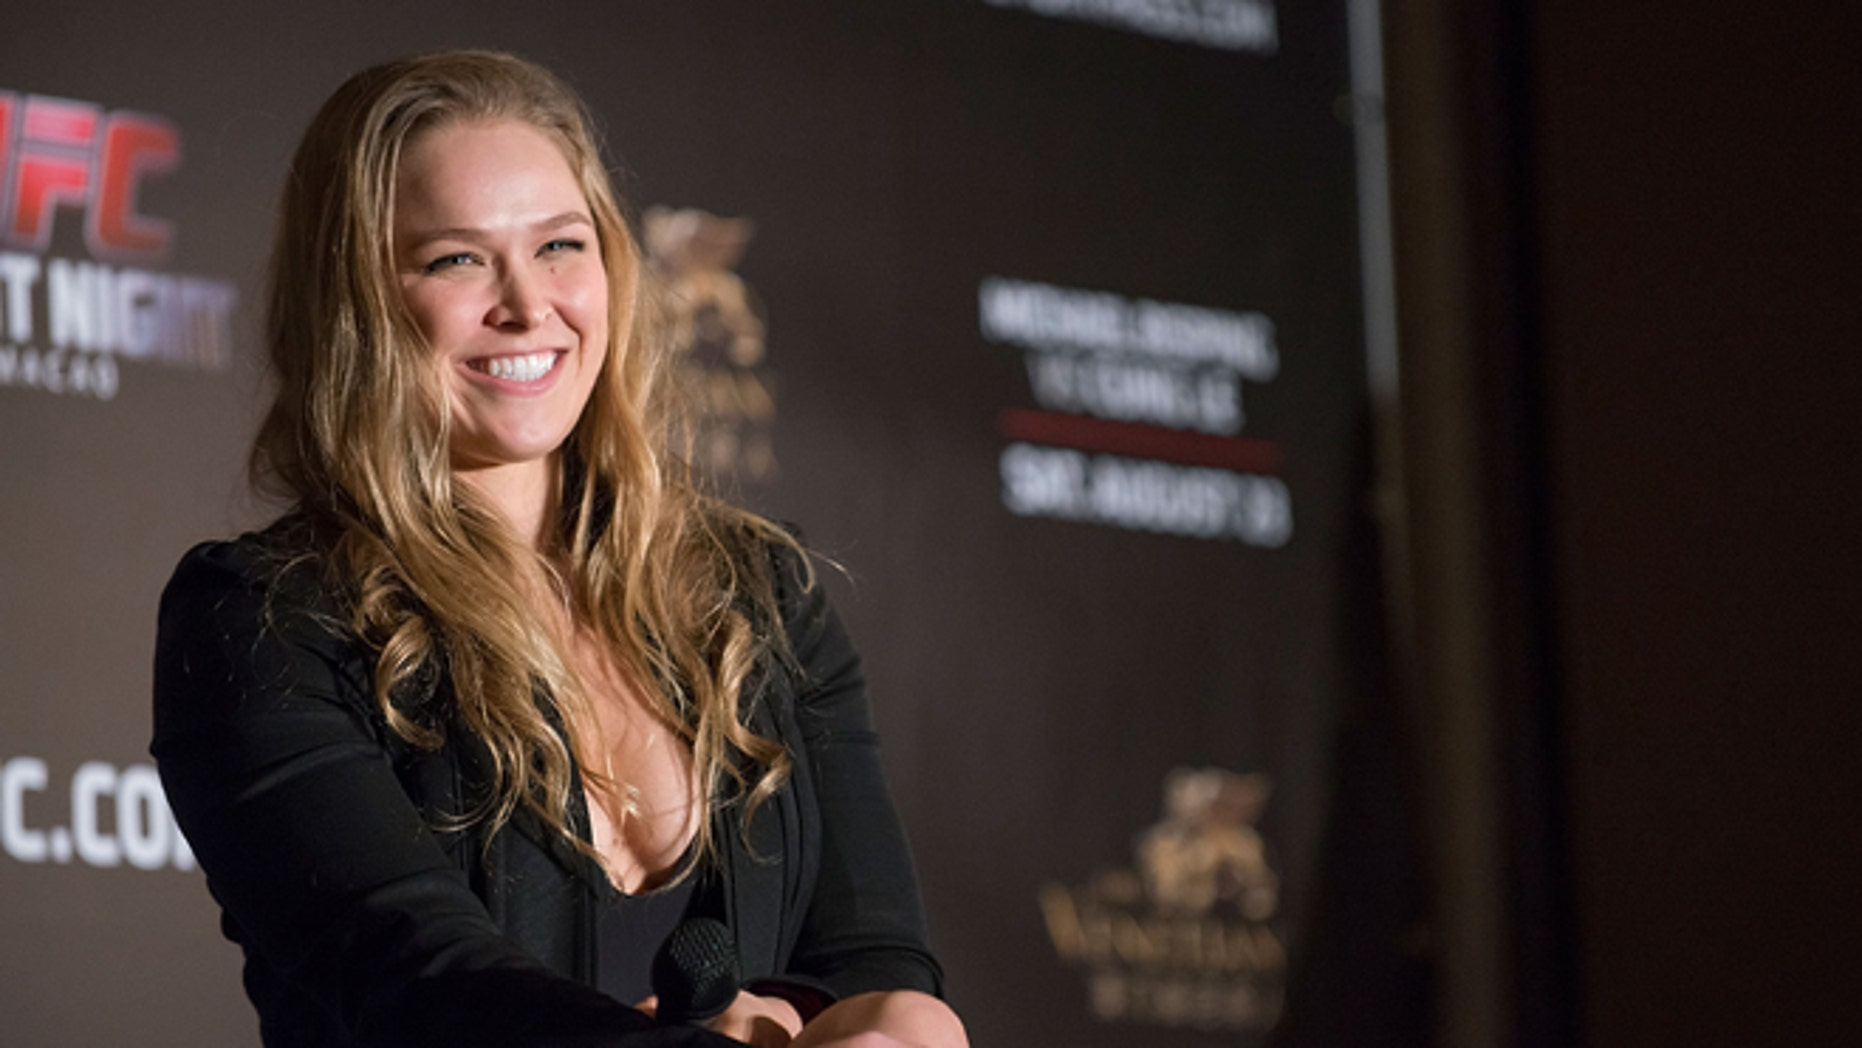 HONG KONG - AUGUST 20:  UFC women's bantamweight champion Ronda Rousey at a Q&A session during the Macao UFC Fight Night Press Conference at the Four Season Hotel on August 20, 2014 in Hong Kong.  (Photo by Anthony Kwan/Getty Images)